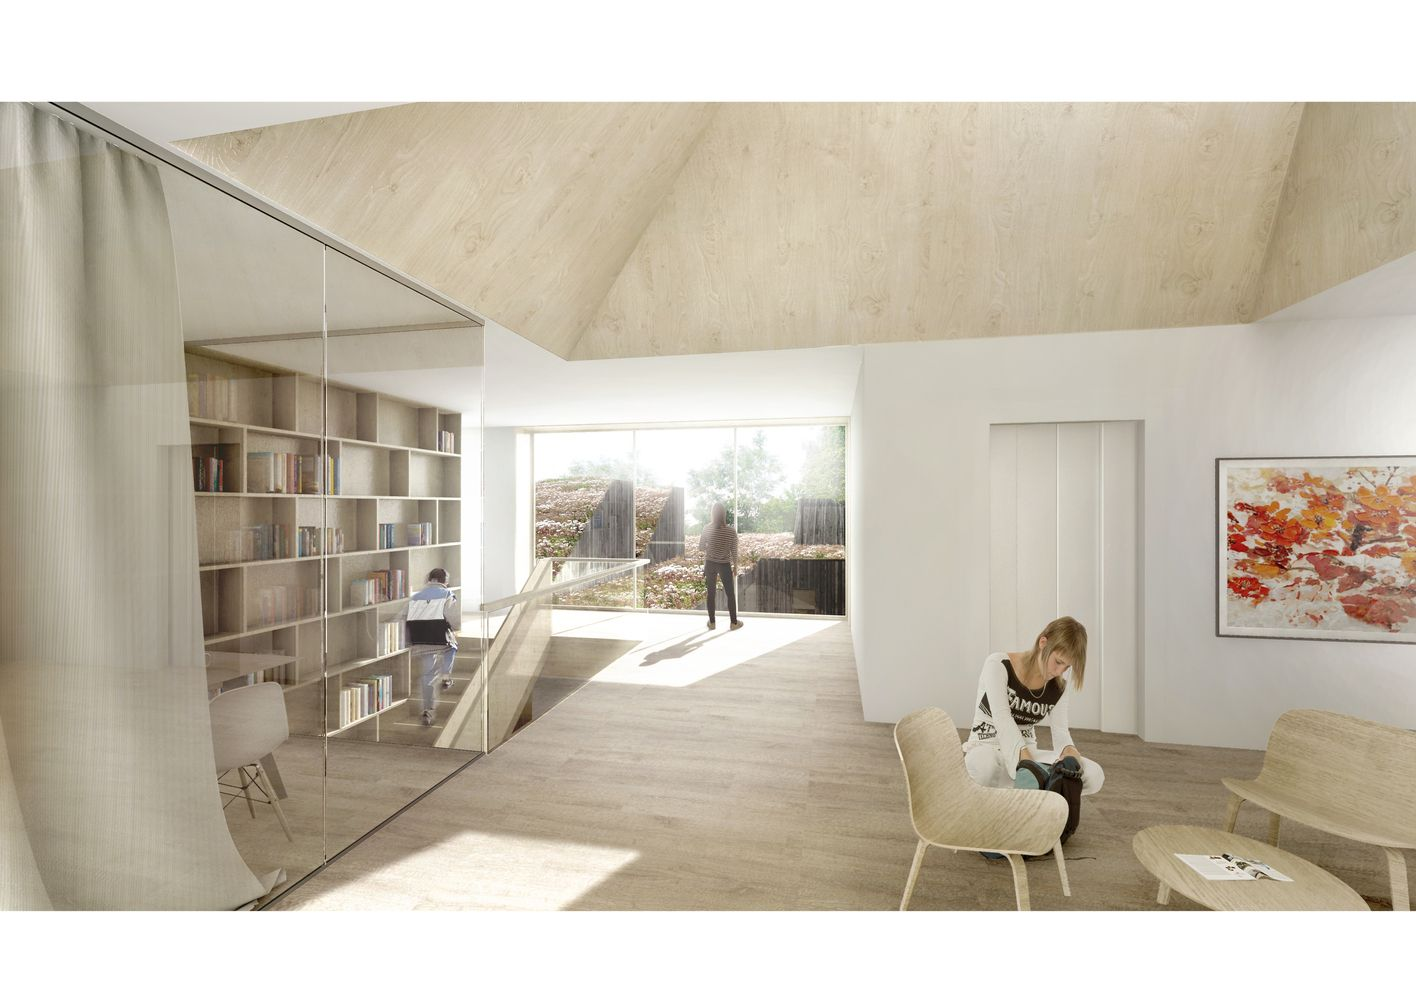 Gallery of CREO Arkitekter and JAJA to Design Home for Children with ...